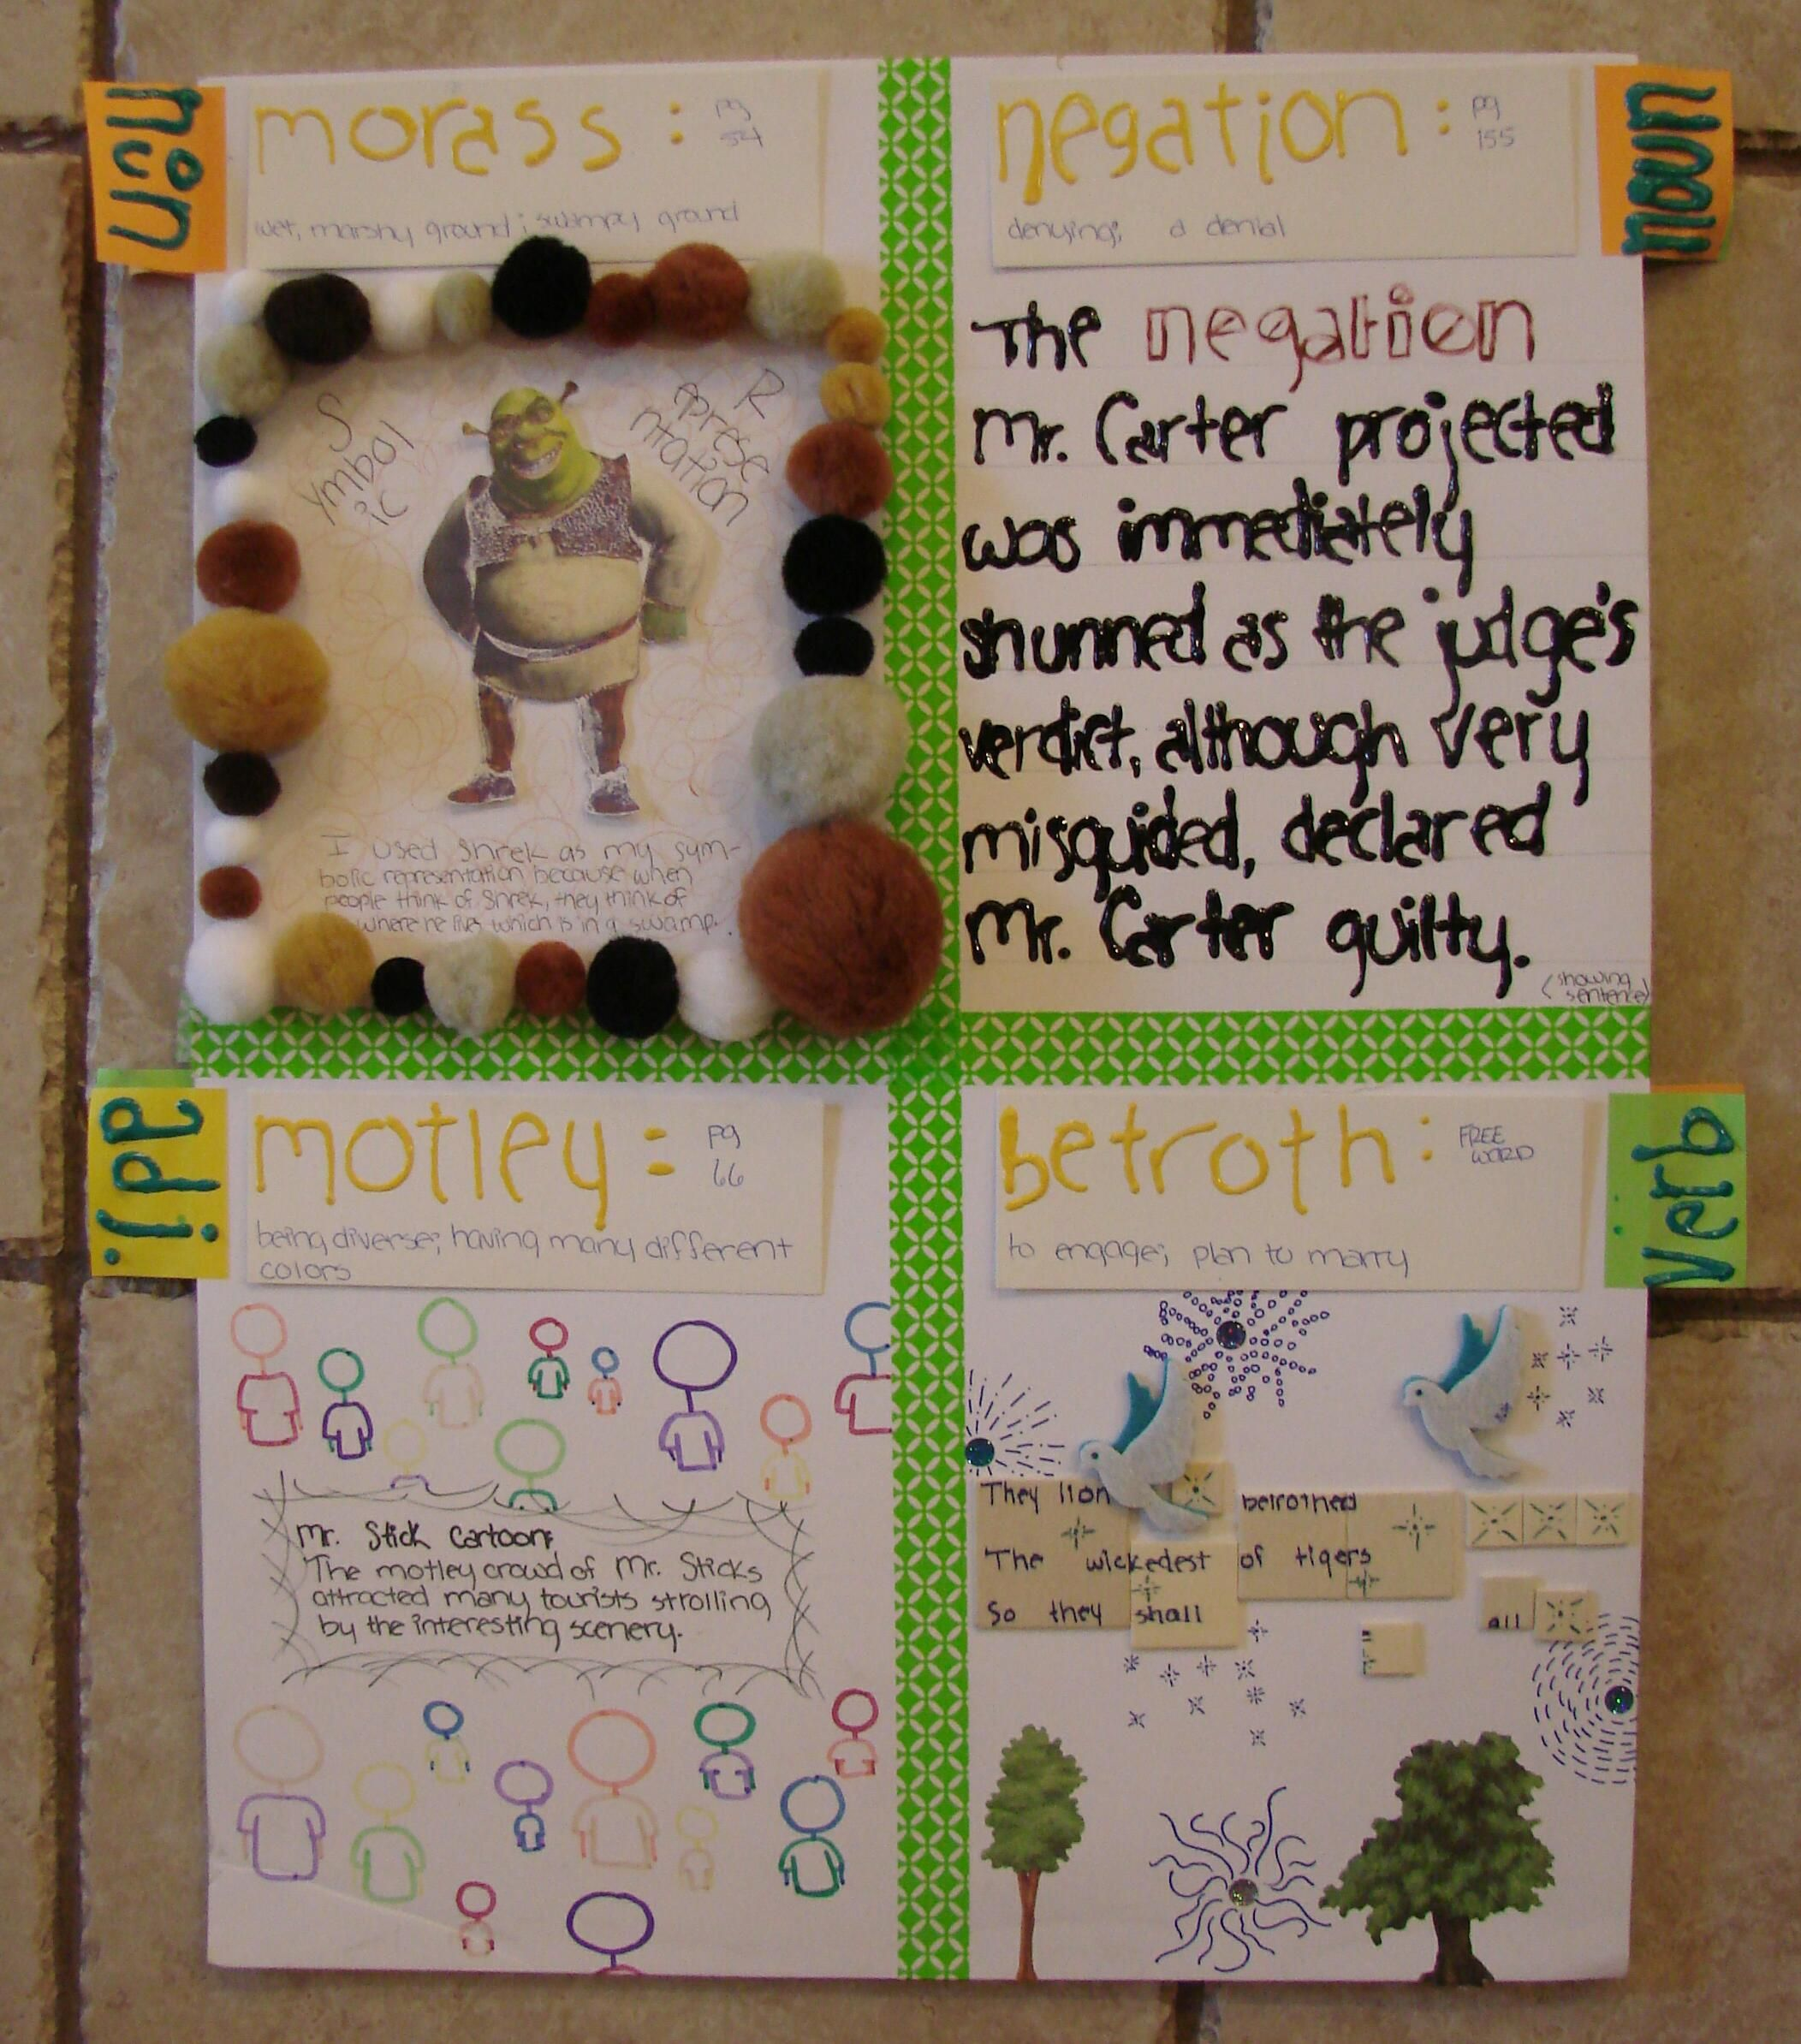 """Serene's vocabulary often came to me in poster-board size with many 3-D items glued carefully in place. I always love the """"bigger is better"""" ideal.  Learn about our weekly vocabulary collecting routine here: http://www.corbettharrison.com/Vocabulary.htm"""